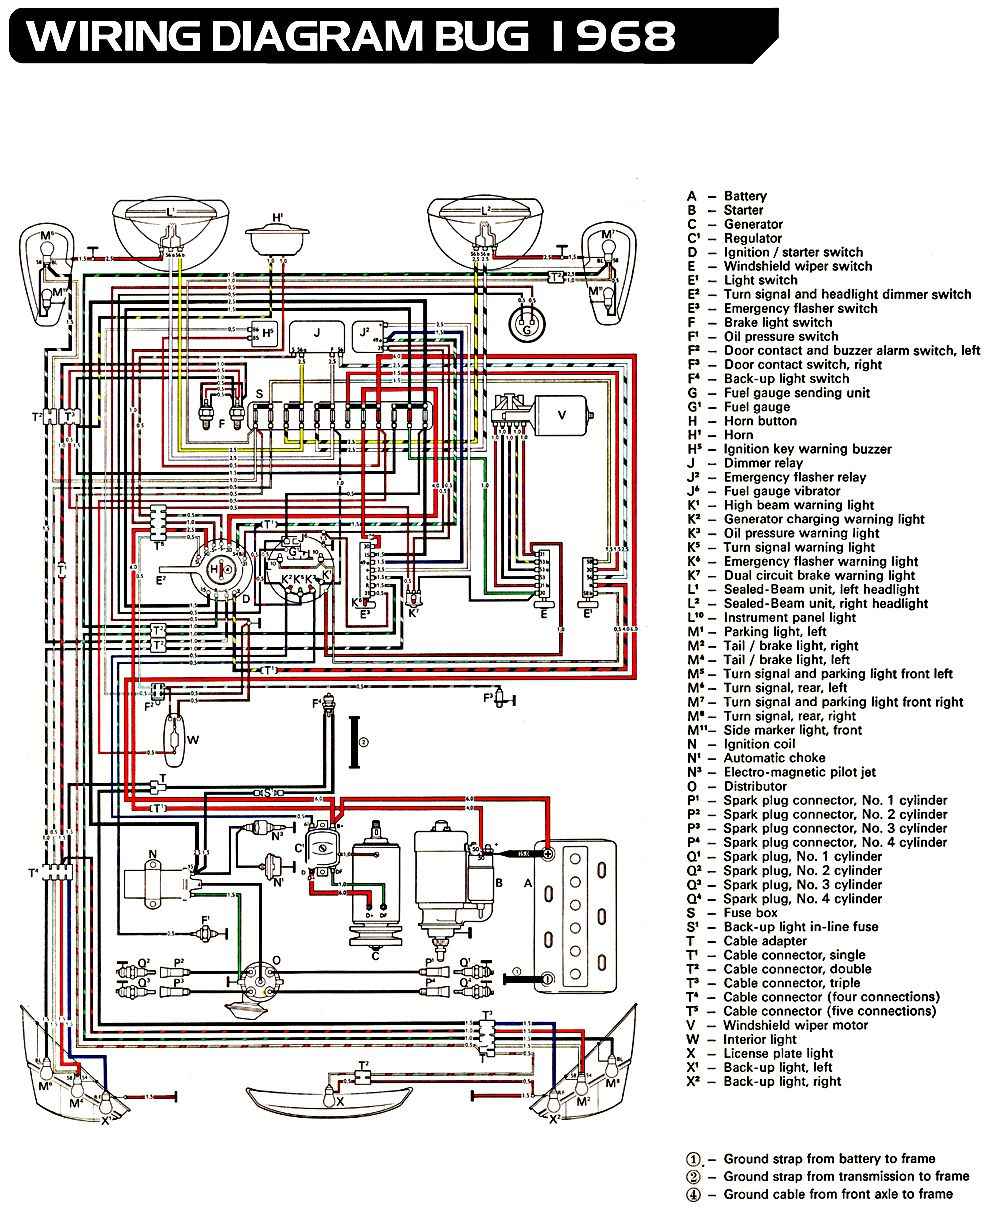 3a1908112d3826270ed5e3be362292bf vw bug ignition wiring diagram 73 vw wiring diagram free vw beetle wiring harness routing at virtualis.co